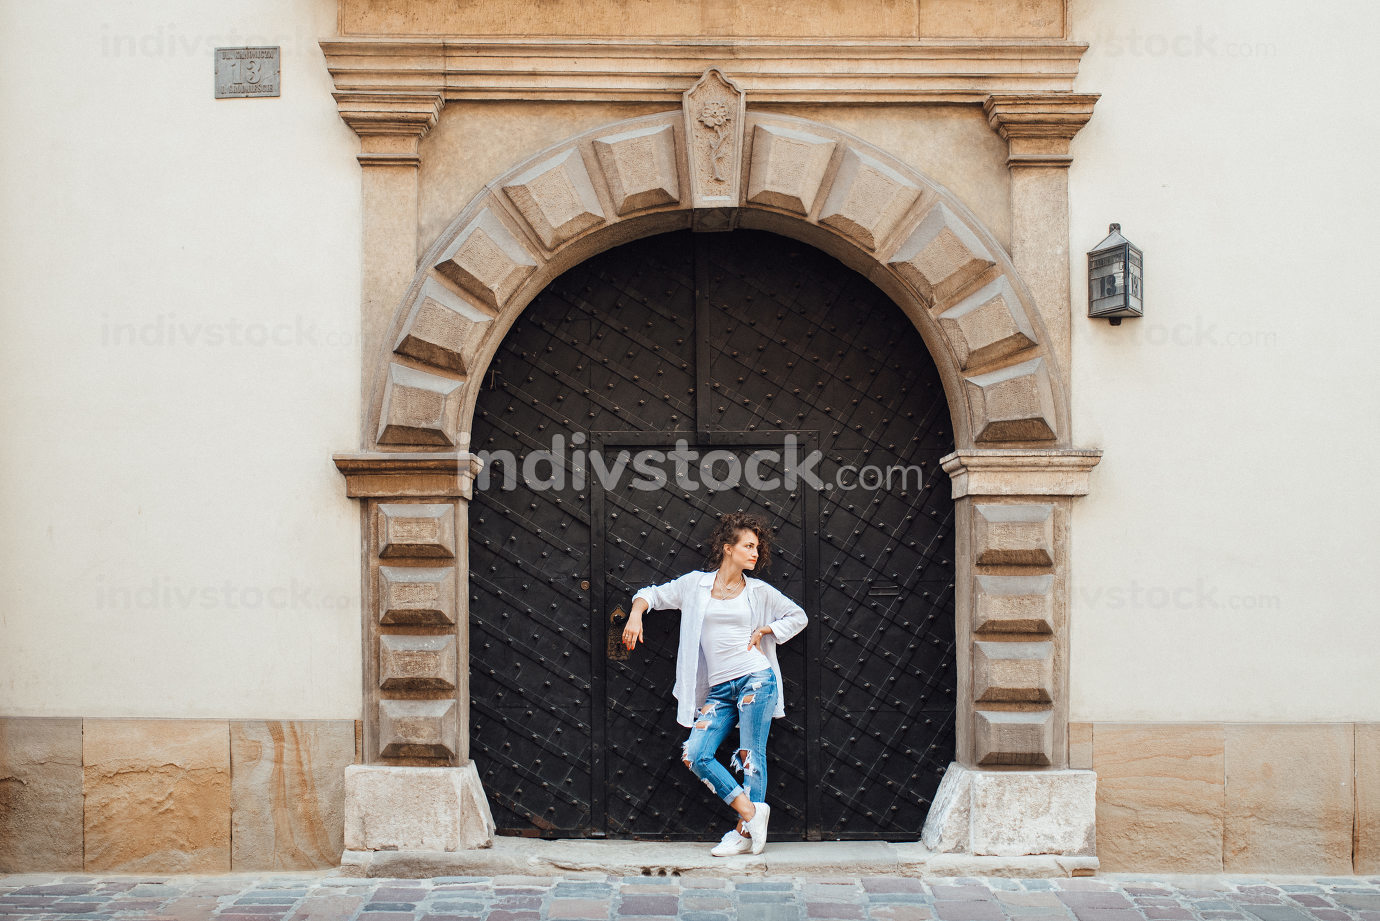 young girl walking on the old streets of europe